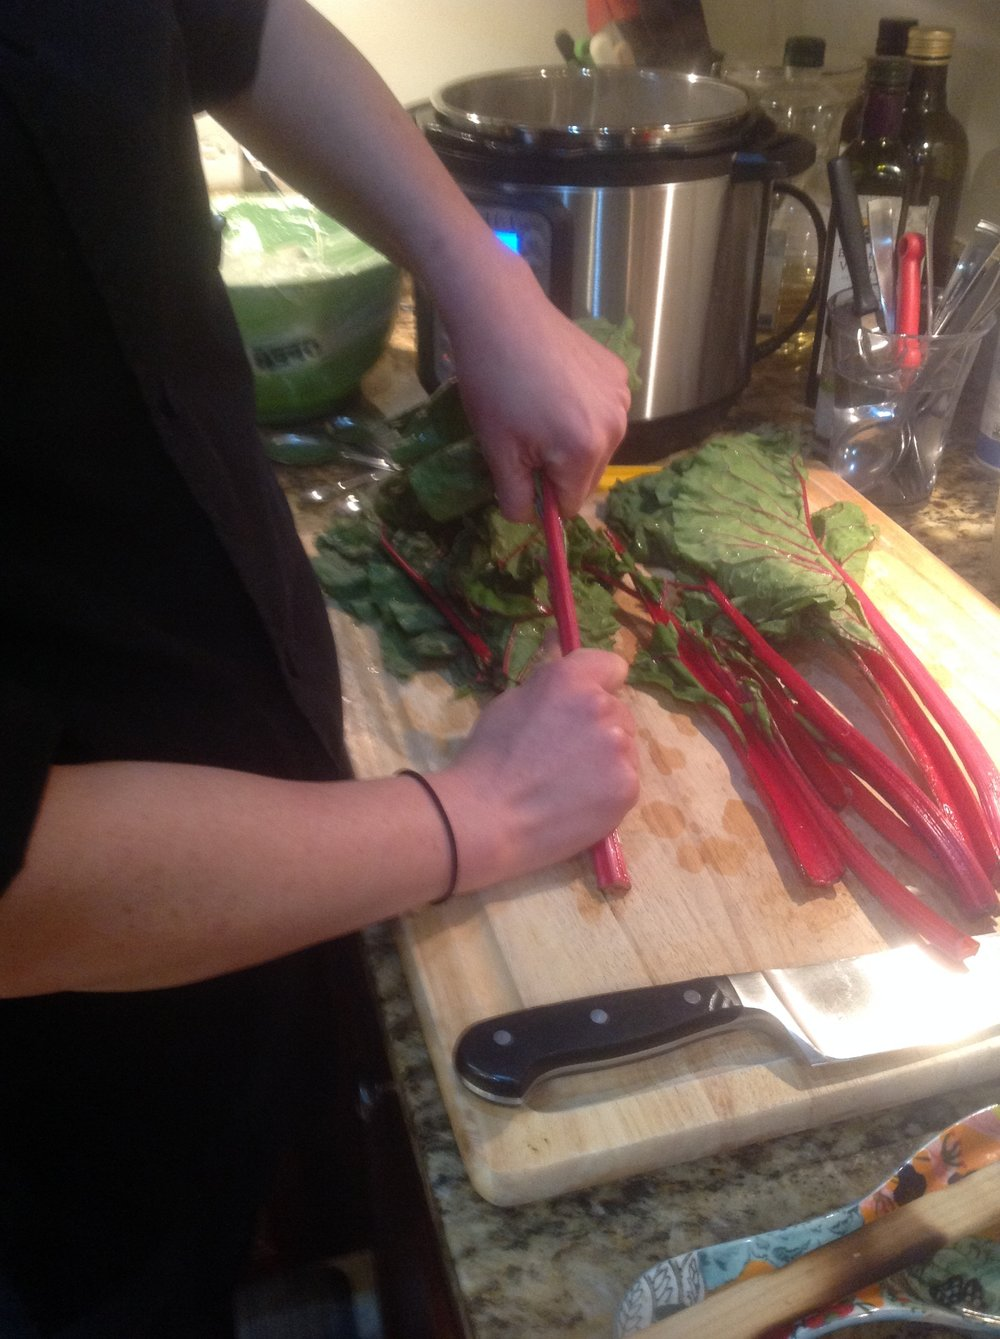 Chef's Greens Cooking Tip: Use your hands to strip off the chard leaves from the stalks. Both parts are edible, but the stalks take longer to cook. They add a nice color and sweetness to this healthy soup